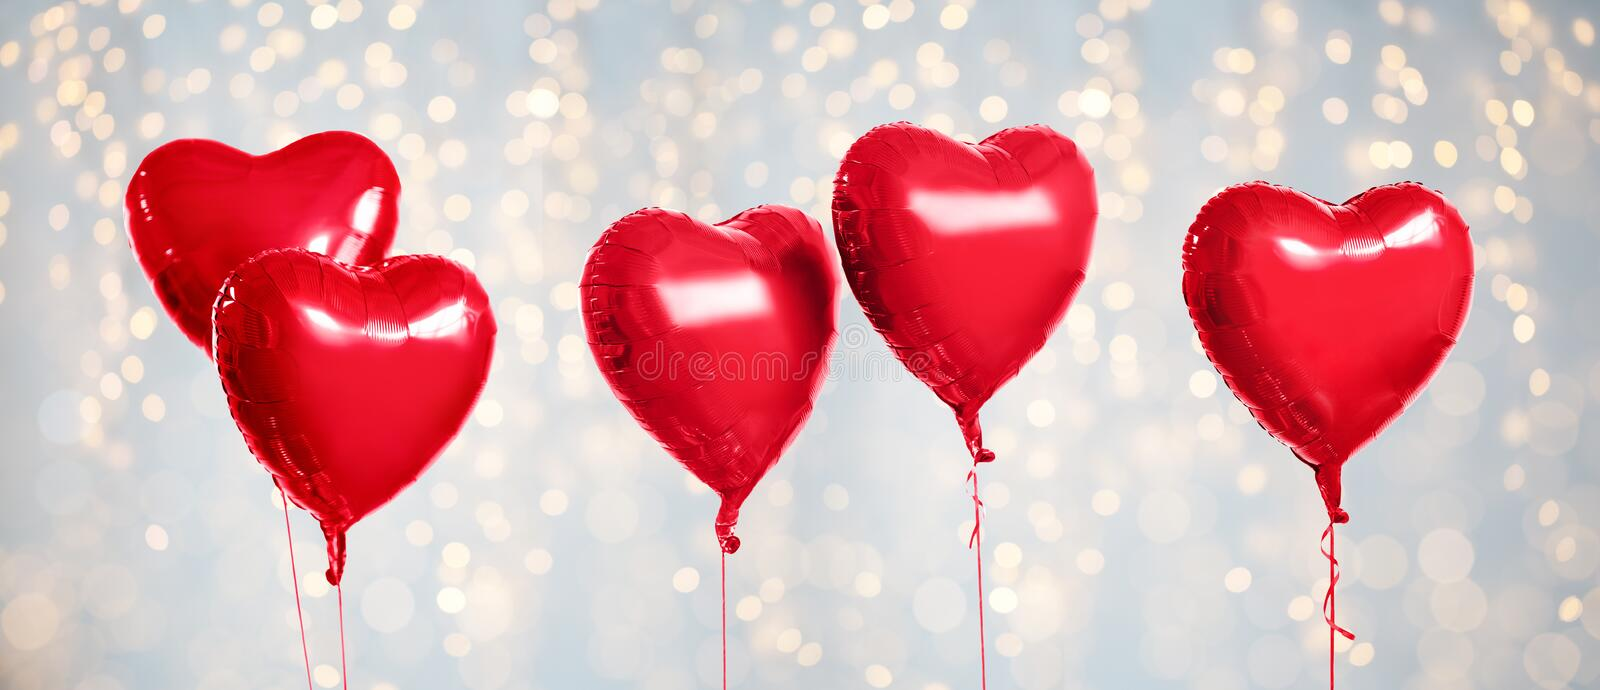 Five red heart shaped helium balloons on white. Holidays, valentines day and party decoration concept - five metallic foil red helium heart shaped balloons over royalty free stock image